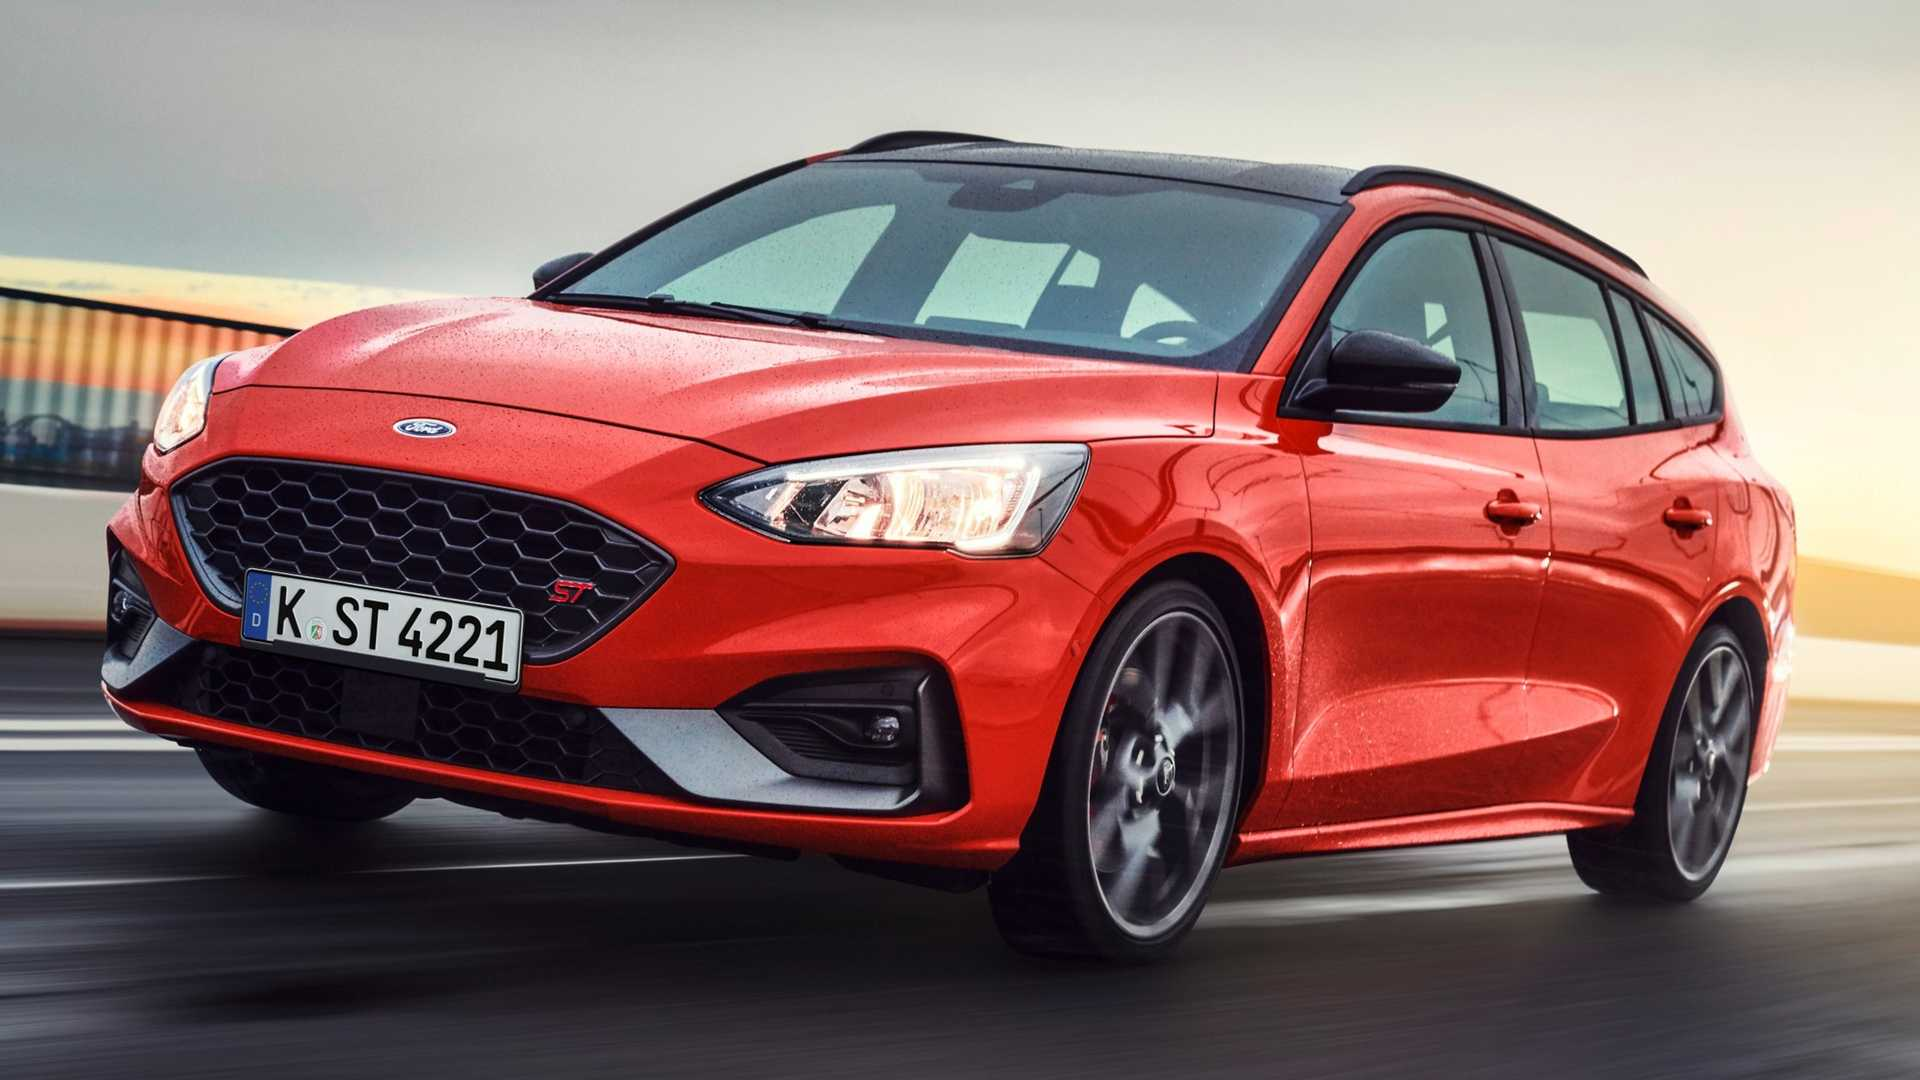 Ford Focus ST Wagon Revealed